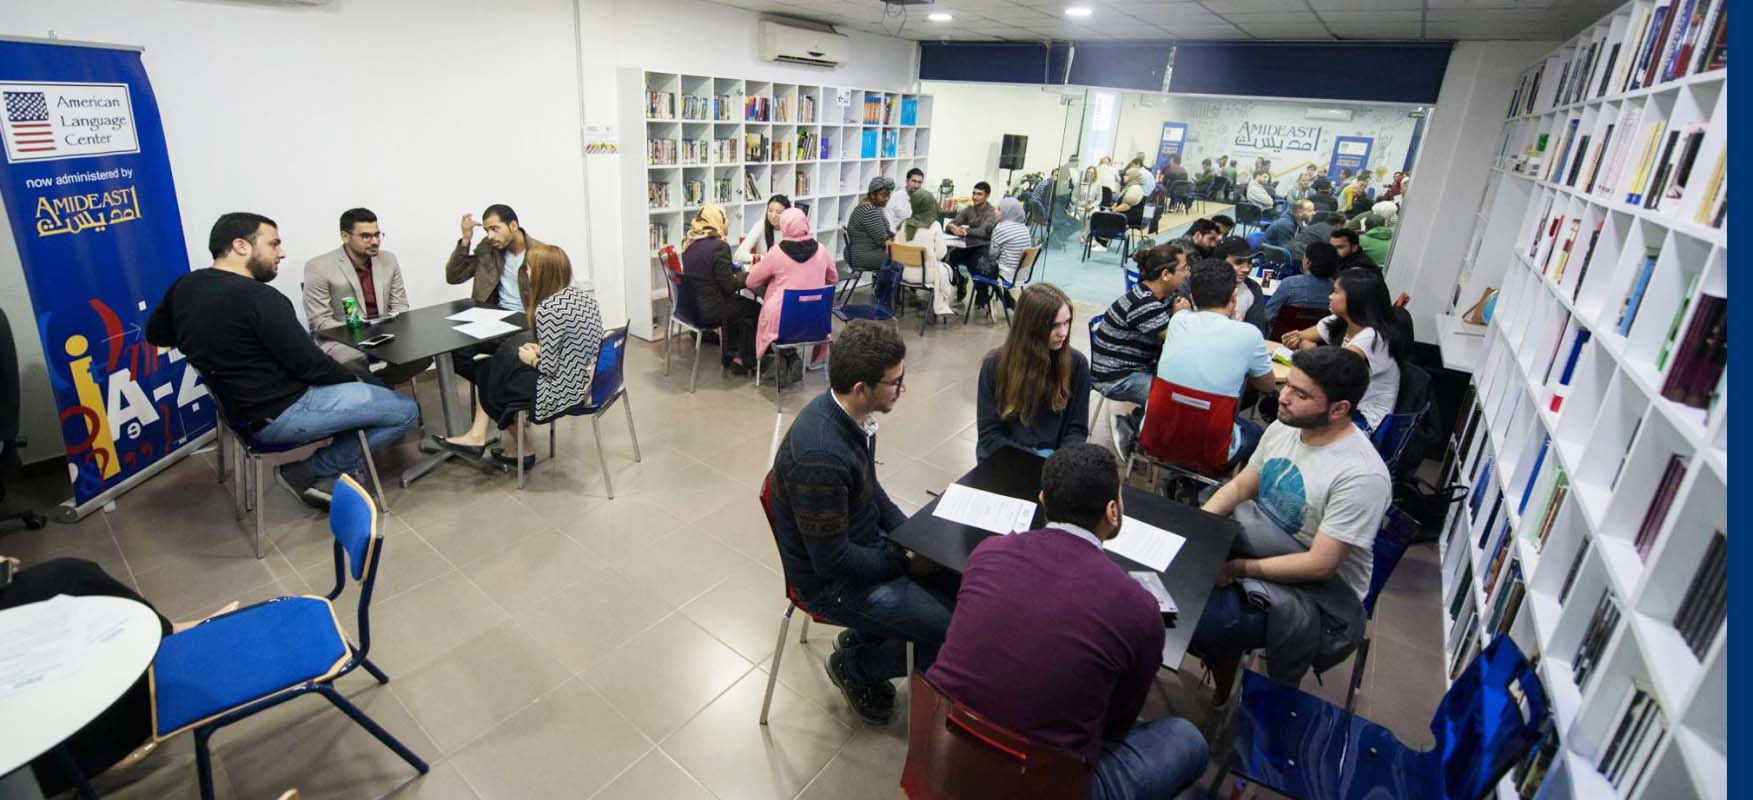 Students sit at tables while practicing their English with each other